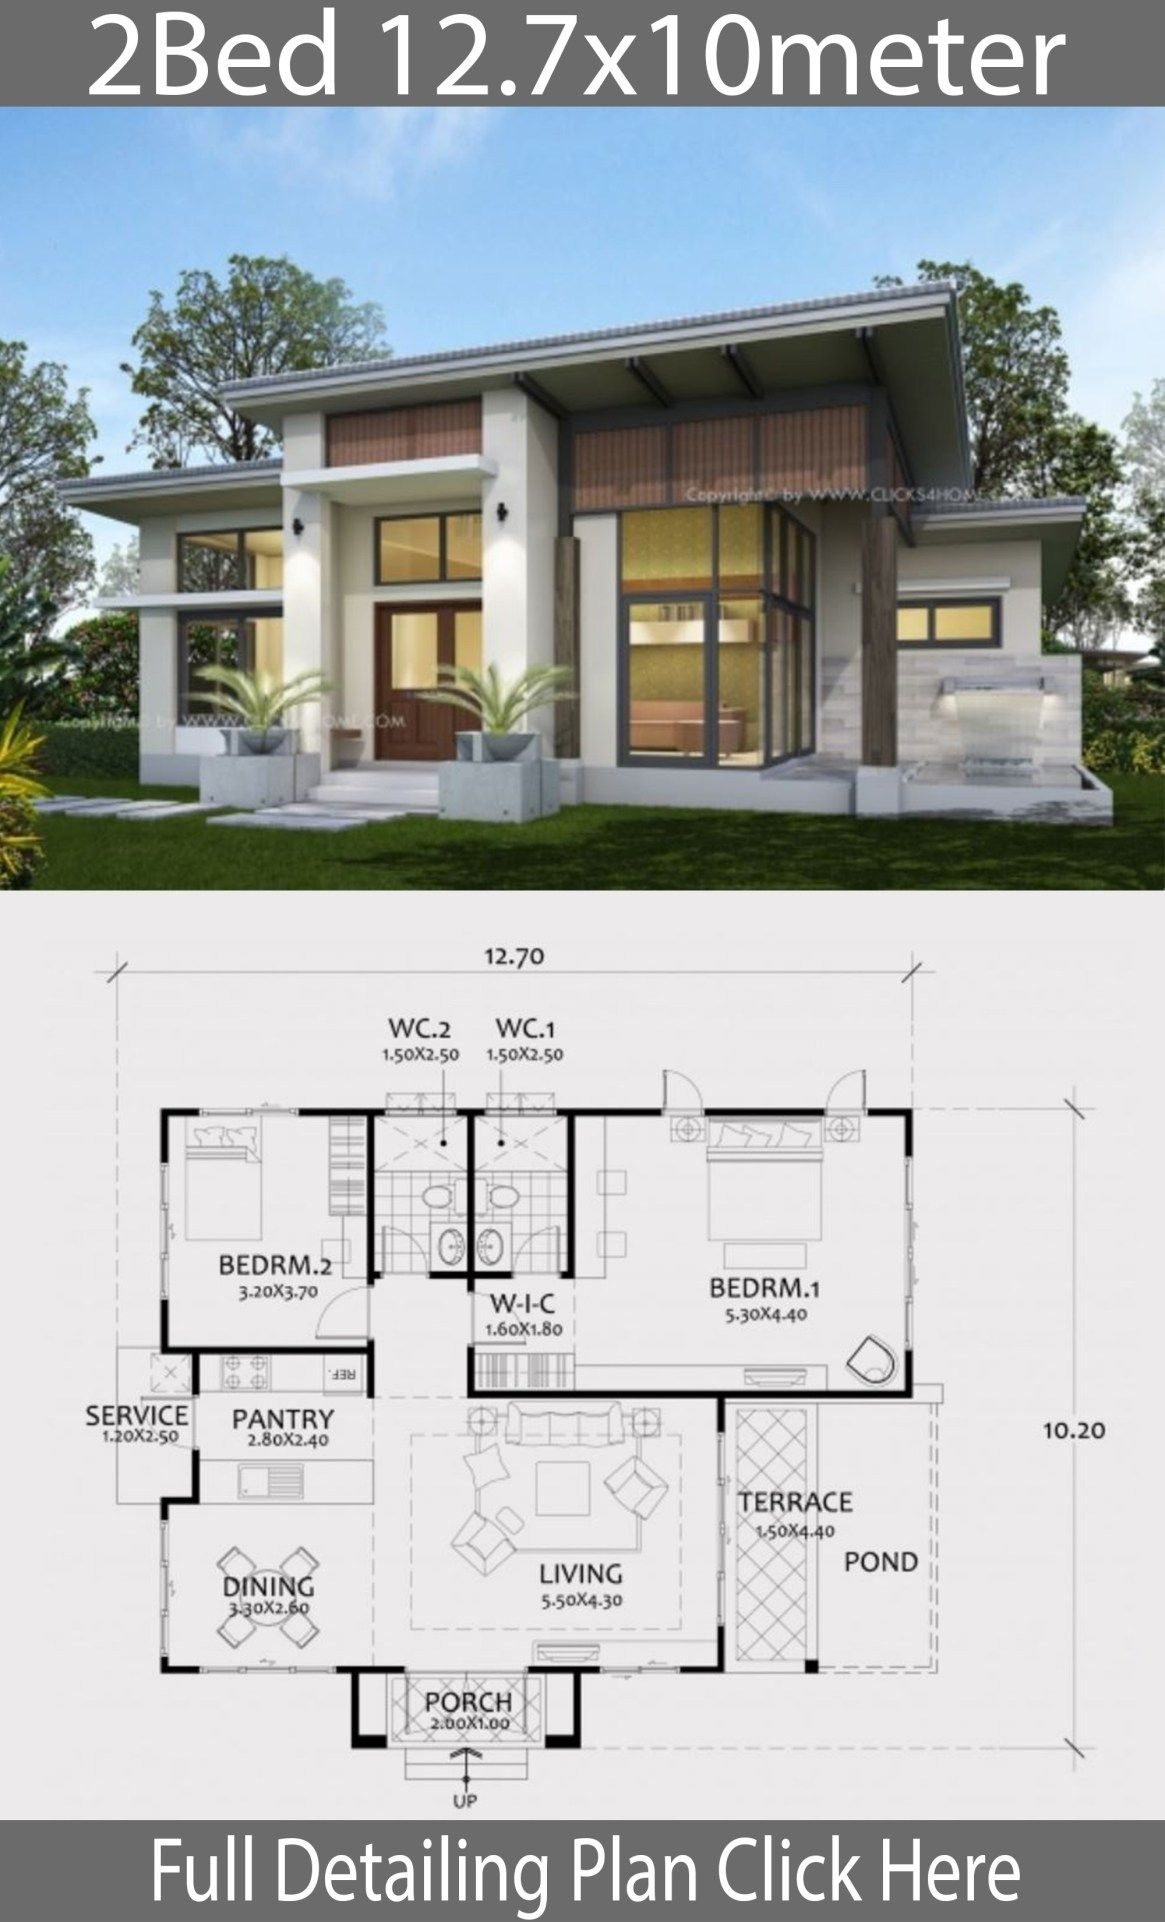 Home Design Plan 12 7x10m With 2 Bedrooms Home Design With Plansearch Architectural House Plans Modern House Plans Modern Bungalow House